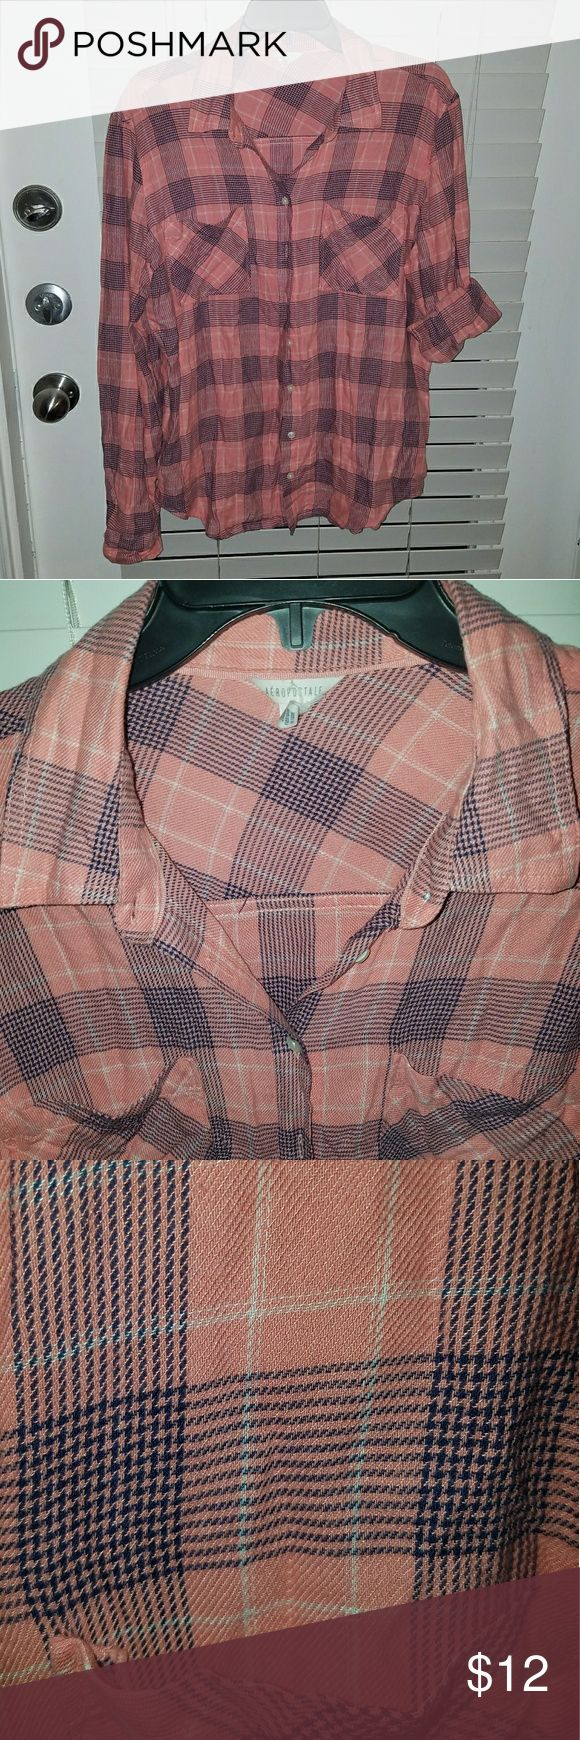 Aeropostale Button down shirt A dusty rose & navy plaid button down shirt that I got from Aeropostale. Wore it maybe once or twice. In a very good condition Aeropostale Tops Button Down Shirts